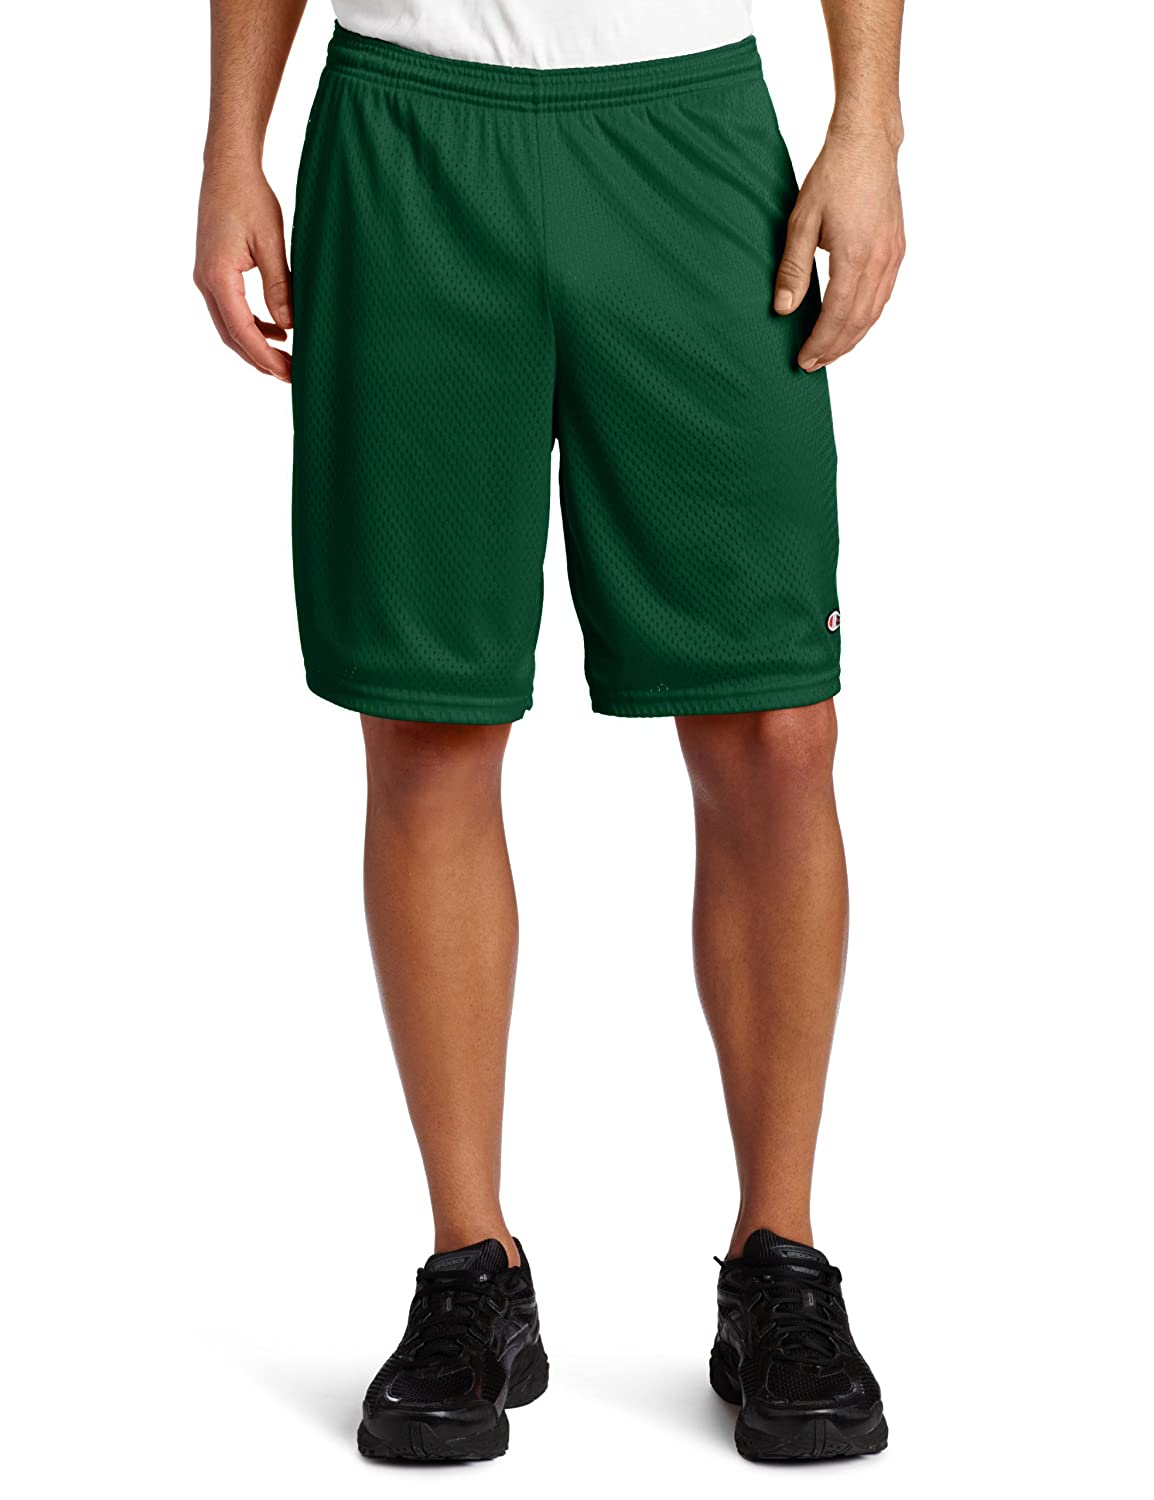 Champion SHORTS メンズ B006Z8HW8O L|ダークグリーン(Athletic Dark Green) ダークグリーン(Athletic Dark Green) L